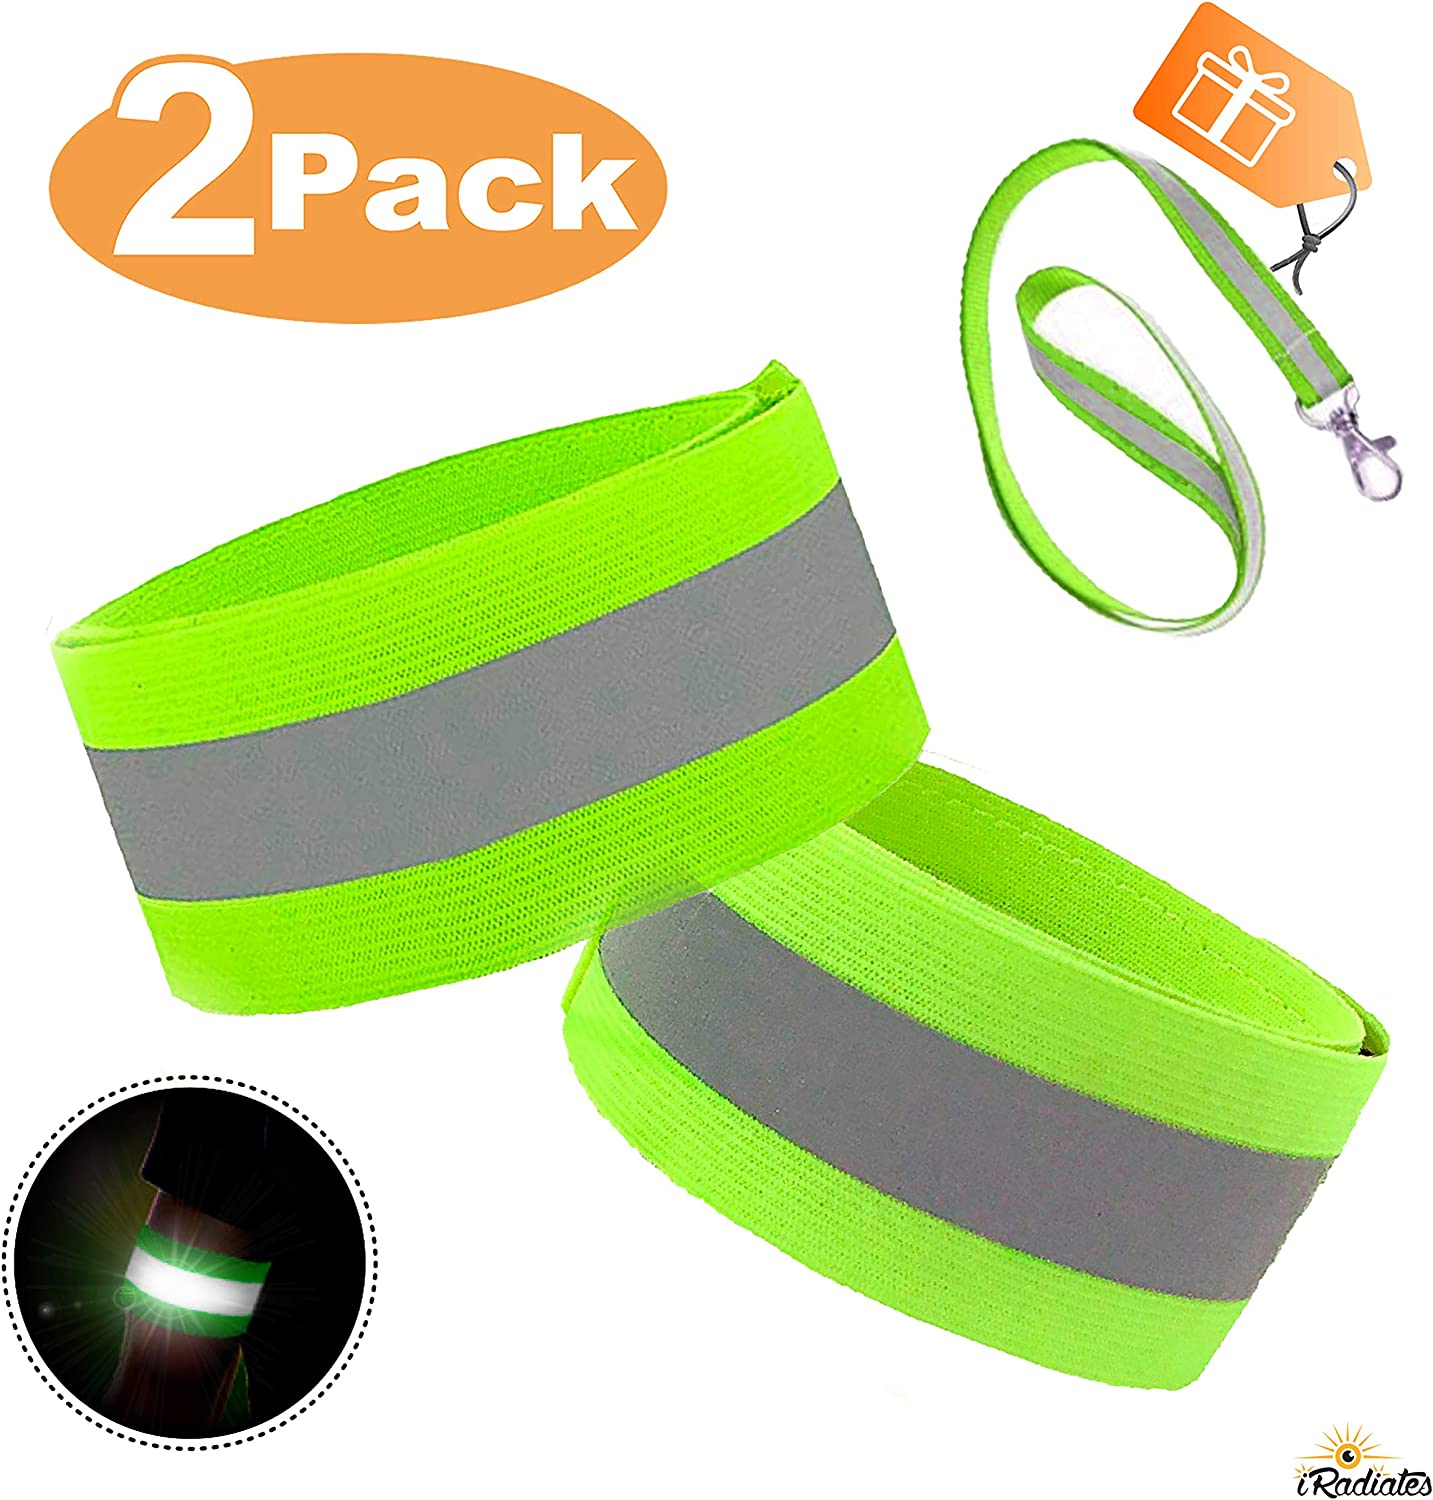 Reflective Tape Strap for Clothing Biking and Safety Night Walking iRadiate Reflective Bands Reflector Running Gear Adjustable Reflective Armband Arm Wrist Ankle Leg Band